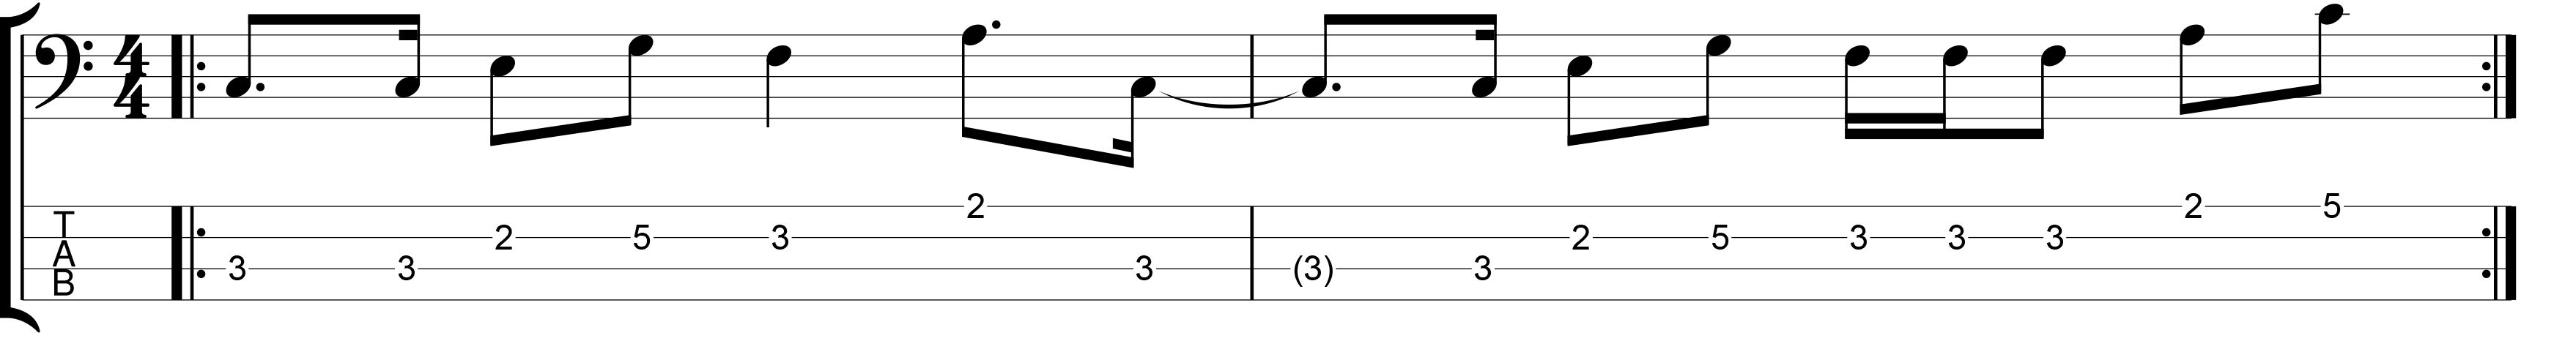 Sixteenth note bass groove